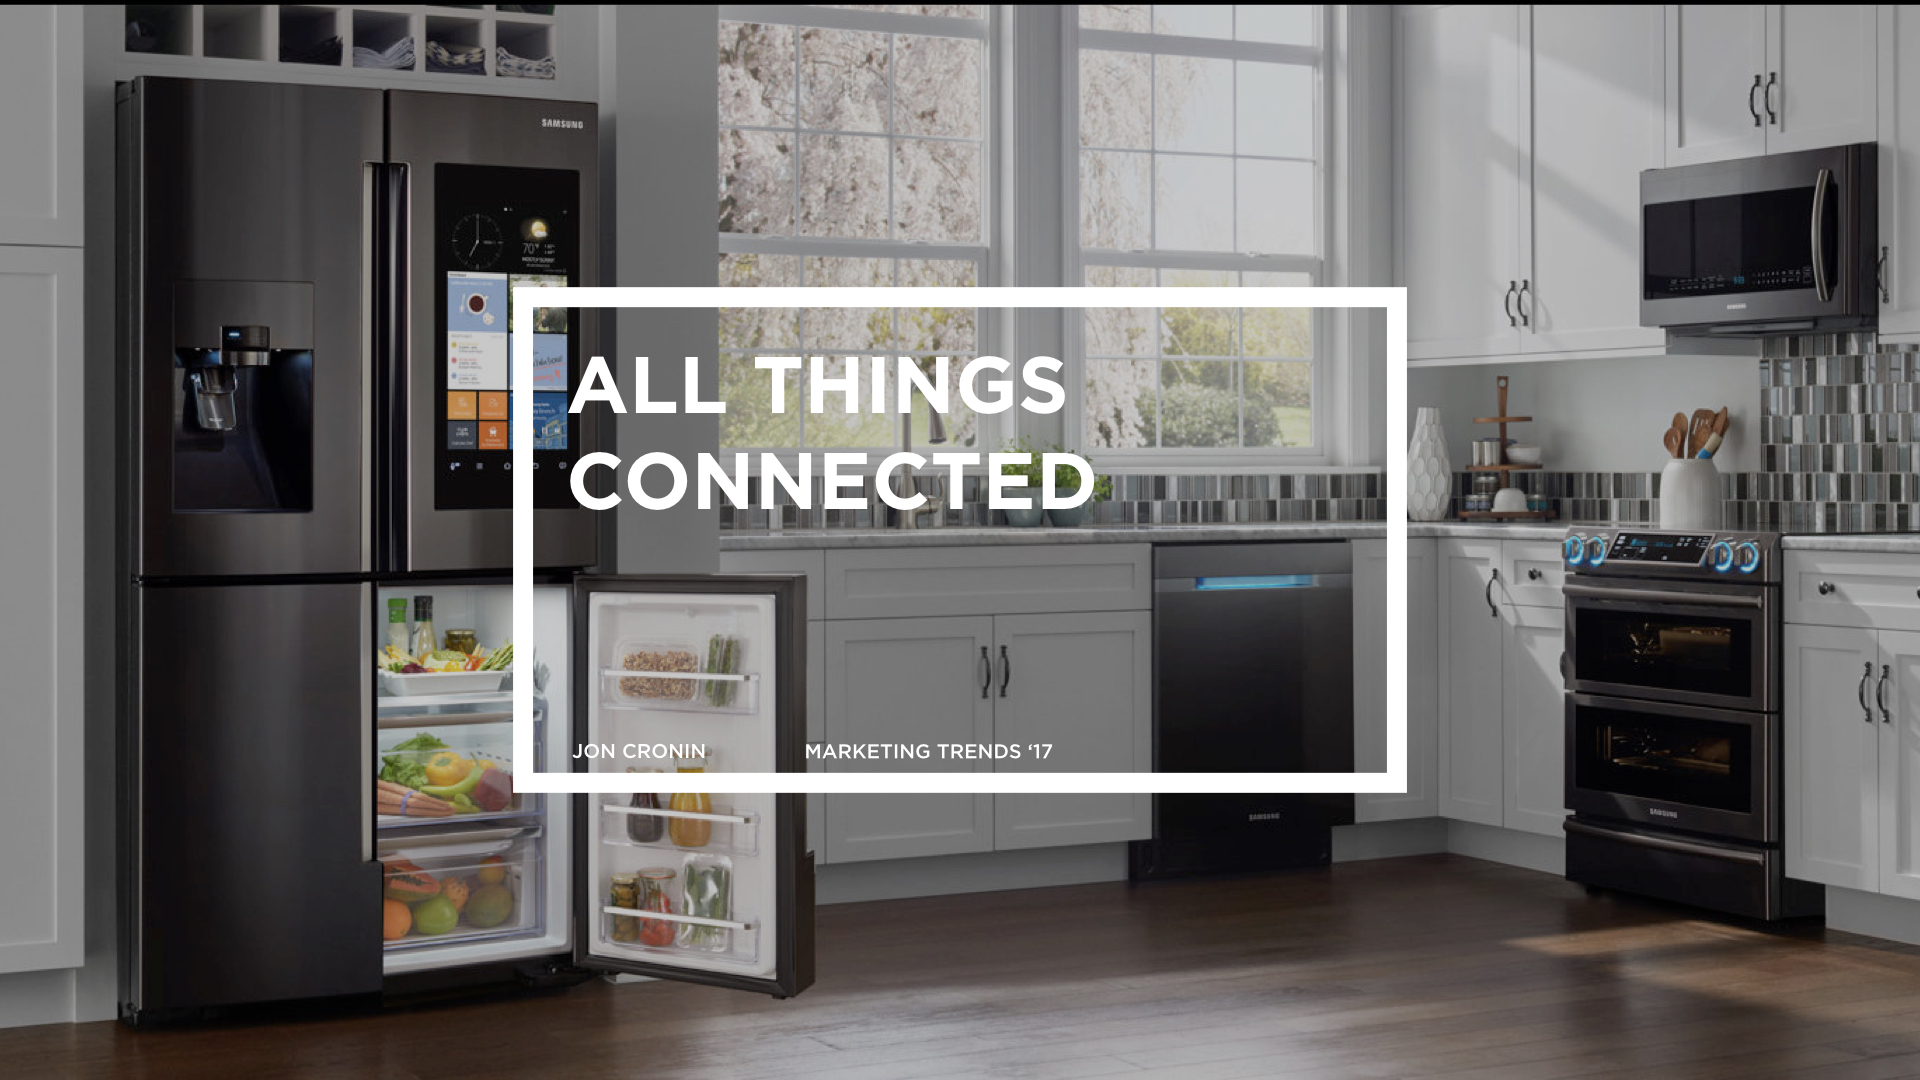 "Internet of Things:  50 billion ""Things"" will be on the Internet  by 2020 . If you have walked into a Best Buy lately you will see that the first section is all IoT related. Connected devices, Wearables, Amazon Echo and Dash buttons, Google Home, Apple Watches, Fitbits, lightbulbs, speakers, locks, security camera's, refrigerators, toasters, toothbrushes… You name it and its going to be connected to the Internet of Things. If you make anything moving forward it must connect to the IoT or be left behind."